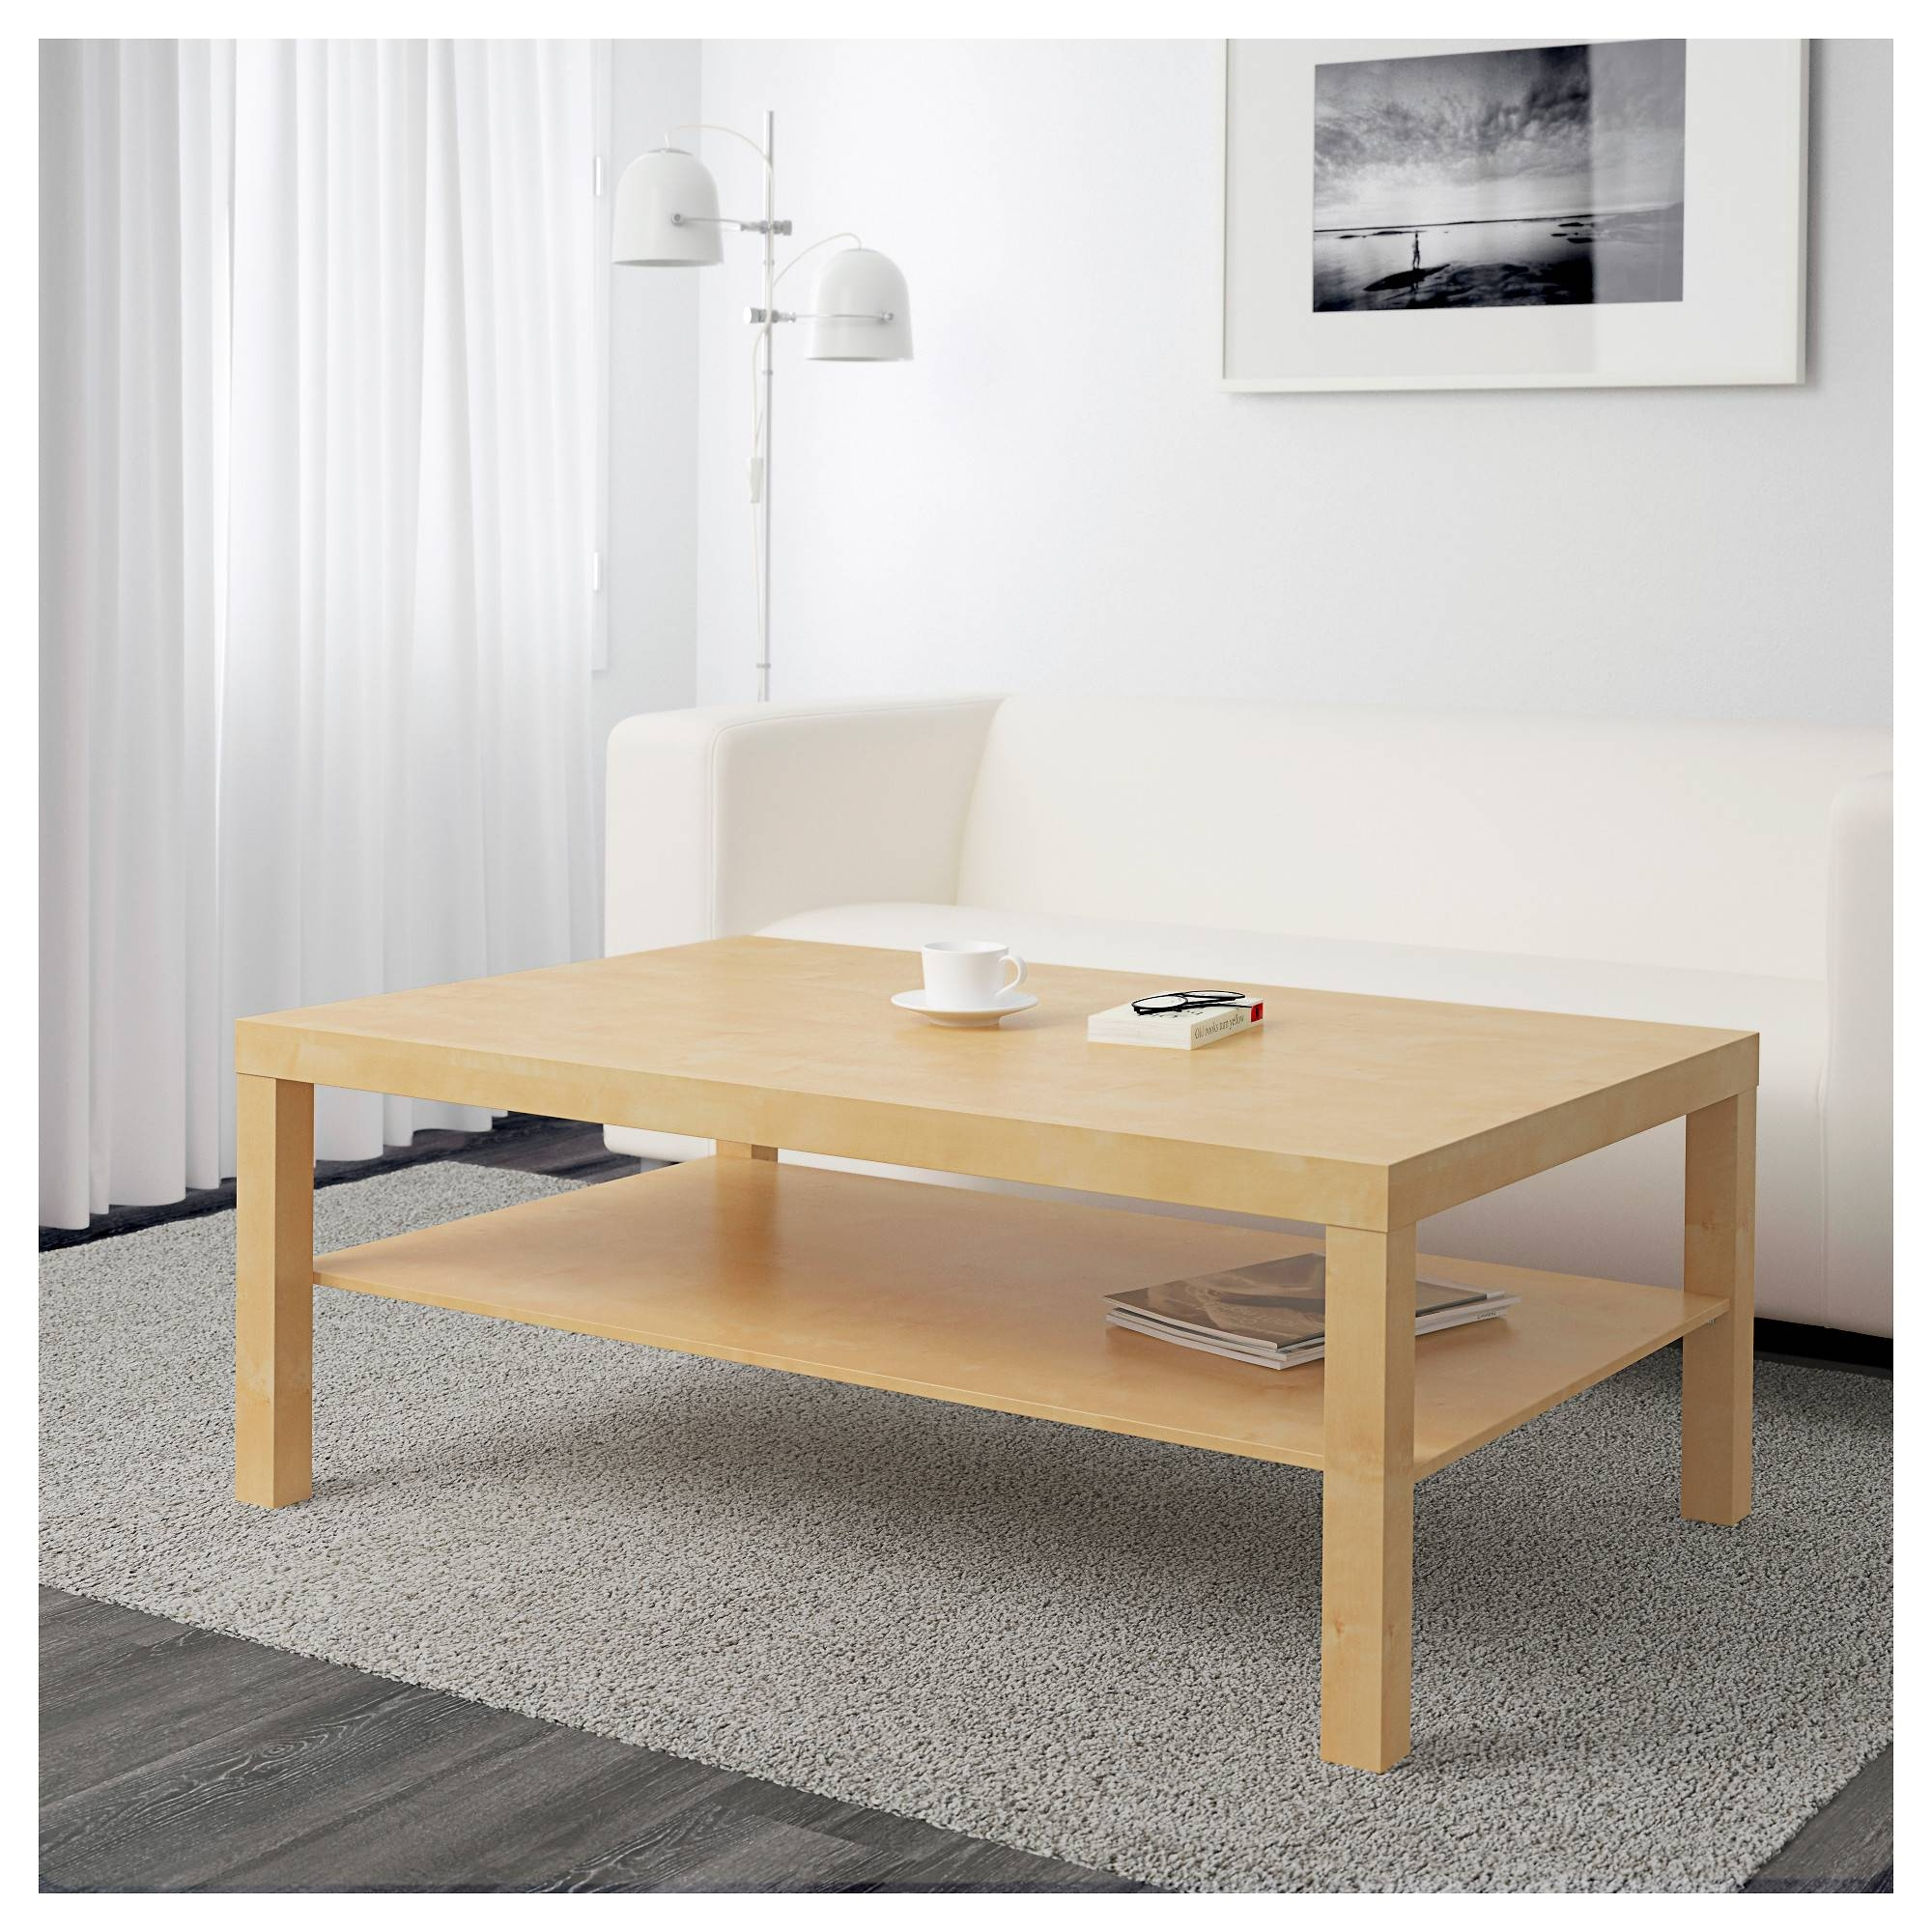 Lack Coffee Table - Birch Effect - Ikea inside Birch Coffee Tables (Image 13 of 30)